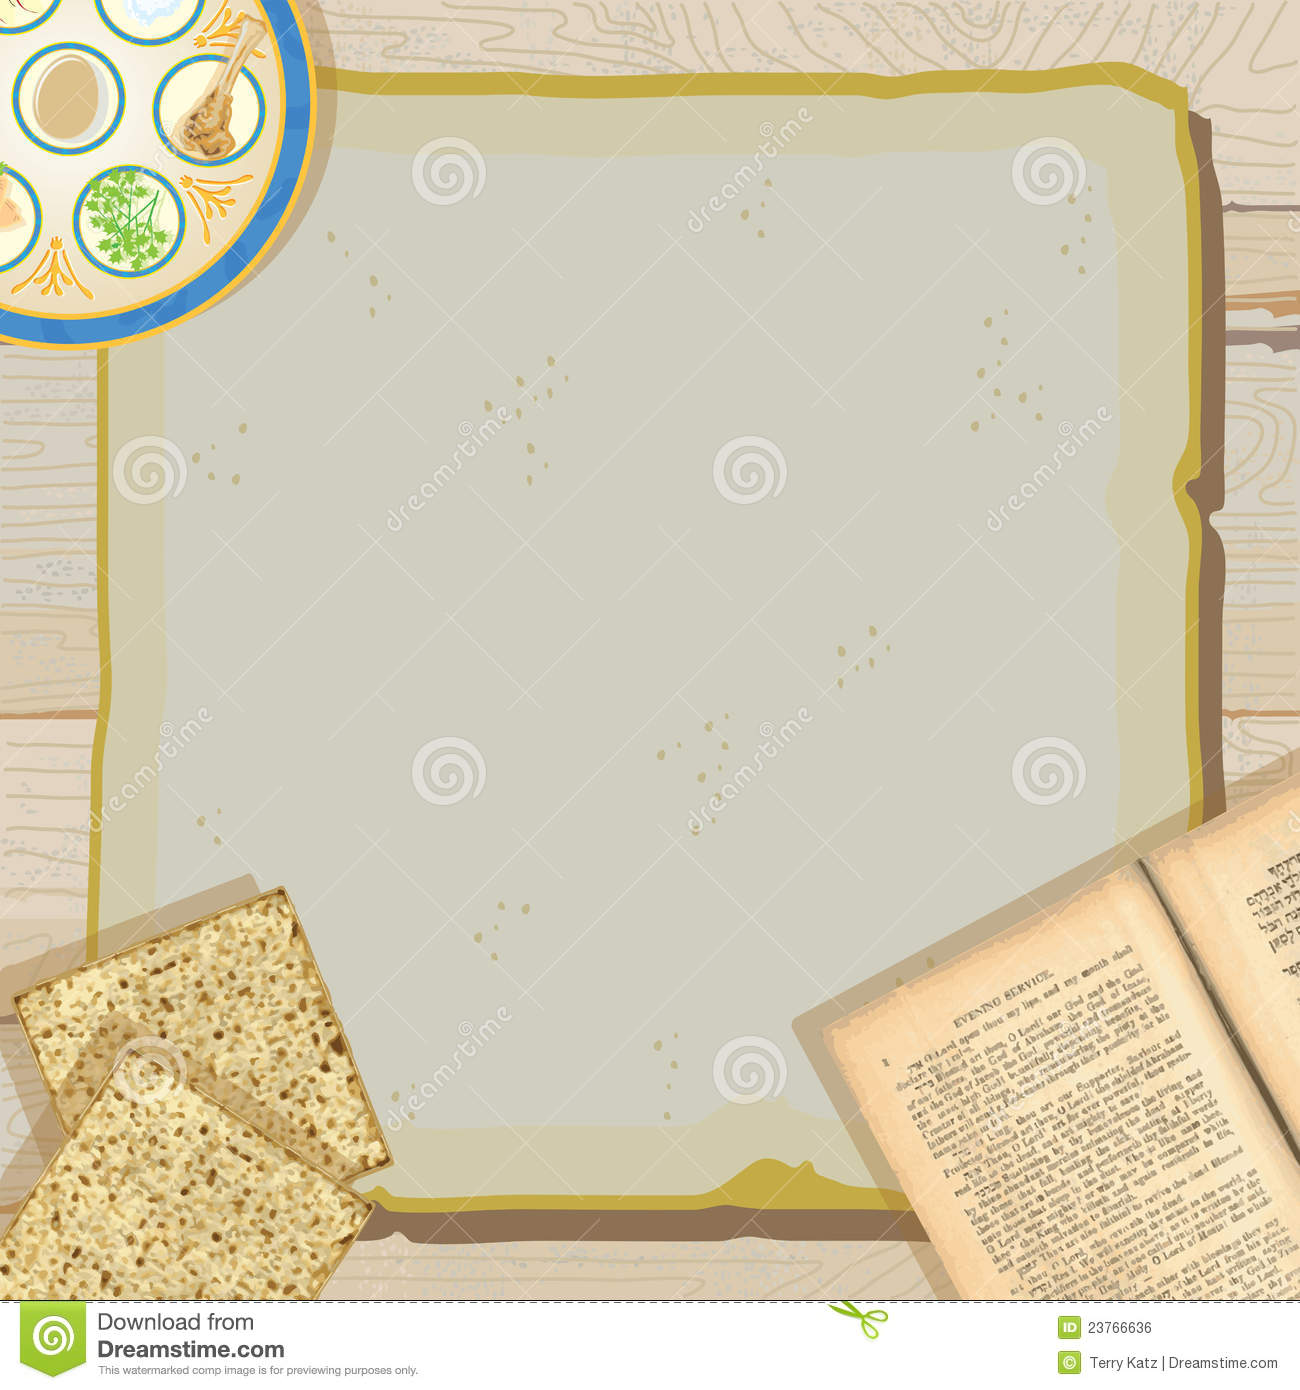 Passover Seder Meal Party Invitation Royalty Free Stock Image - Image ...